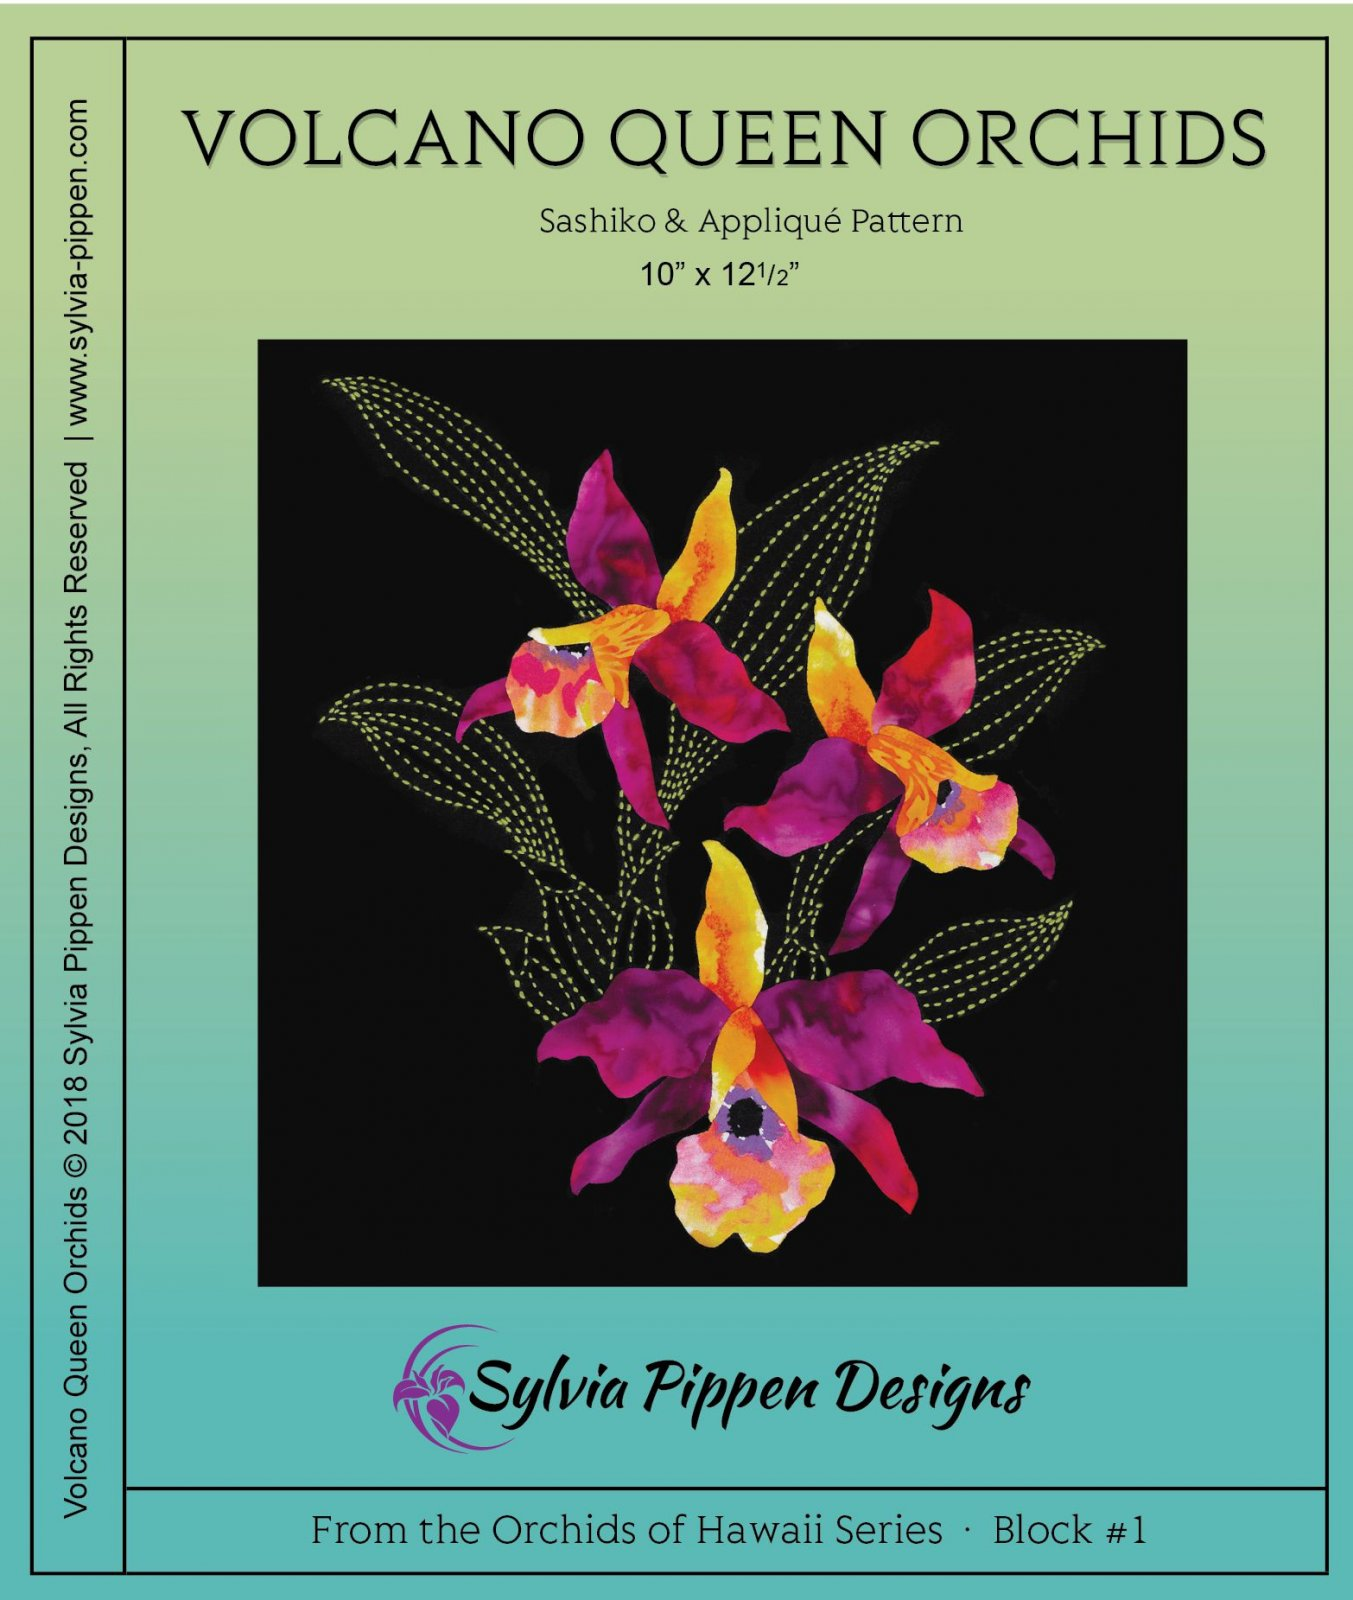 Volcano Queen Orchids Sashiko & Applique Pattern from the Orchids of Hawaii  Series